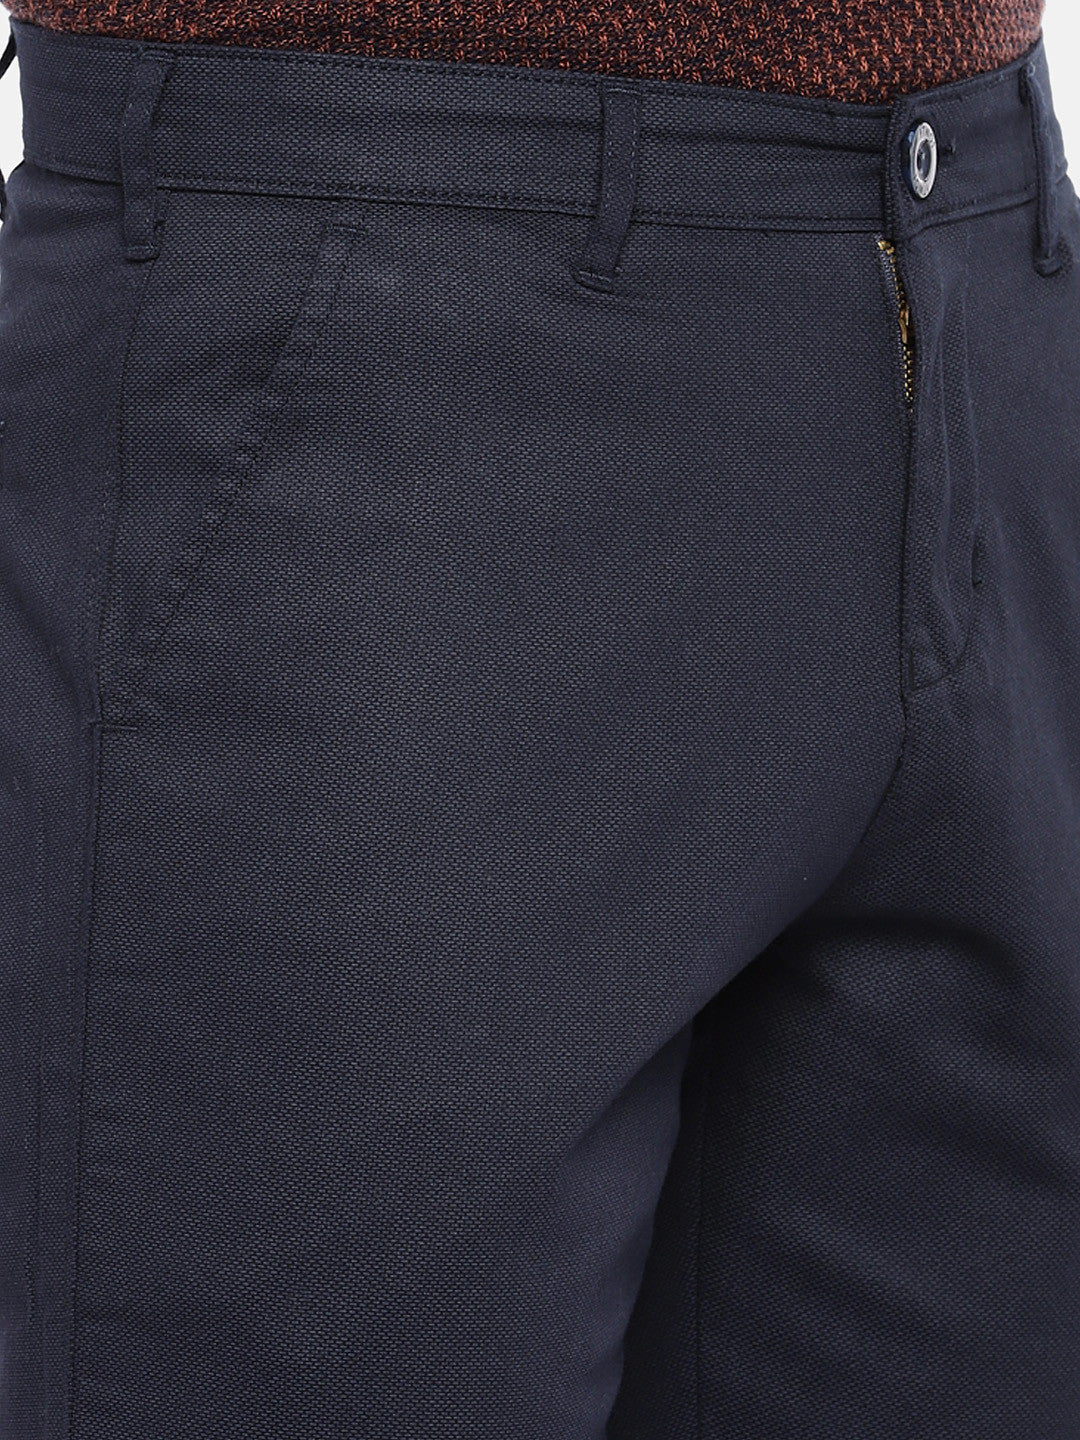 Navy Blue Regular Fit Solid Chinos-5